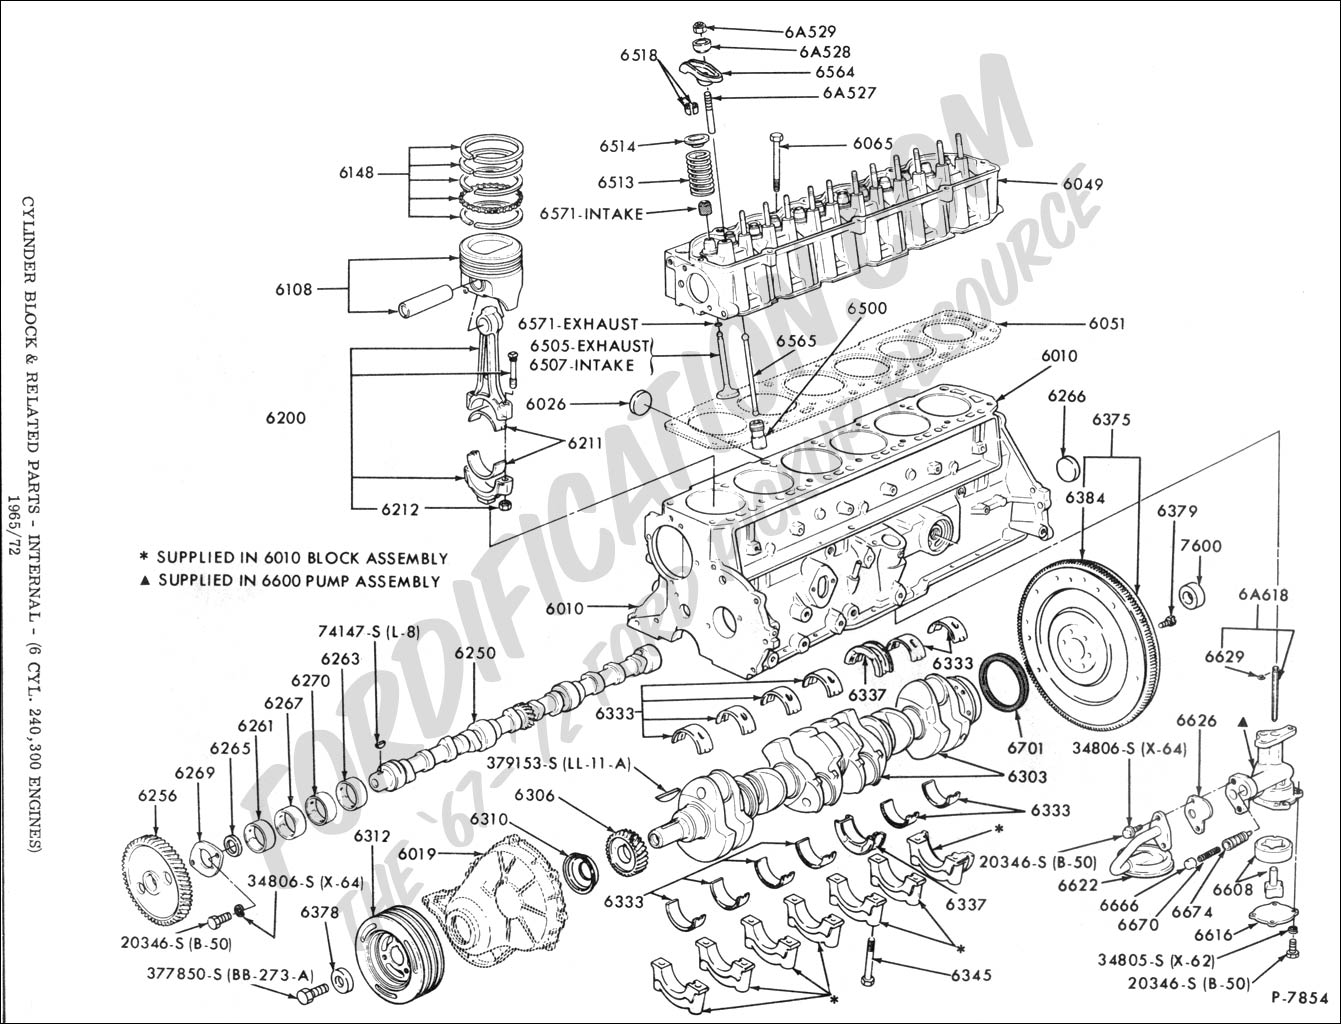 2006 ford f 150 6 cylinder engine diagram wiring library2006 ford f 150 6 cylinder engine diagram